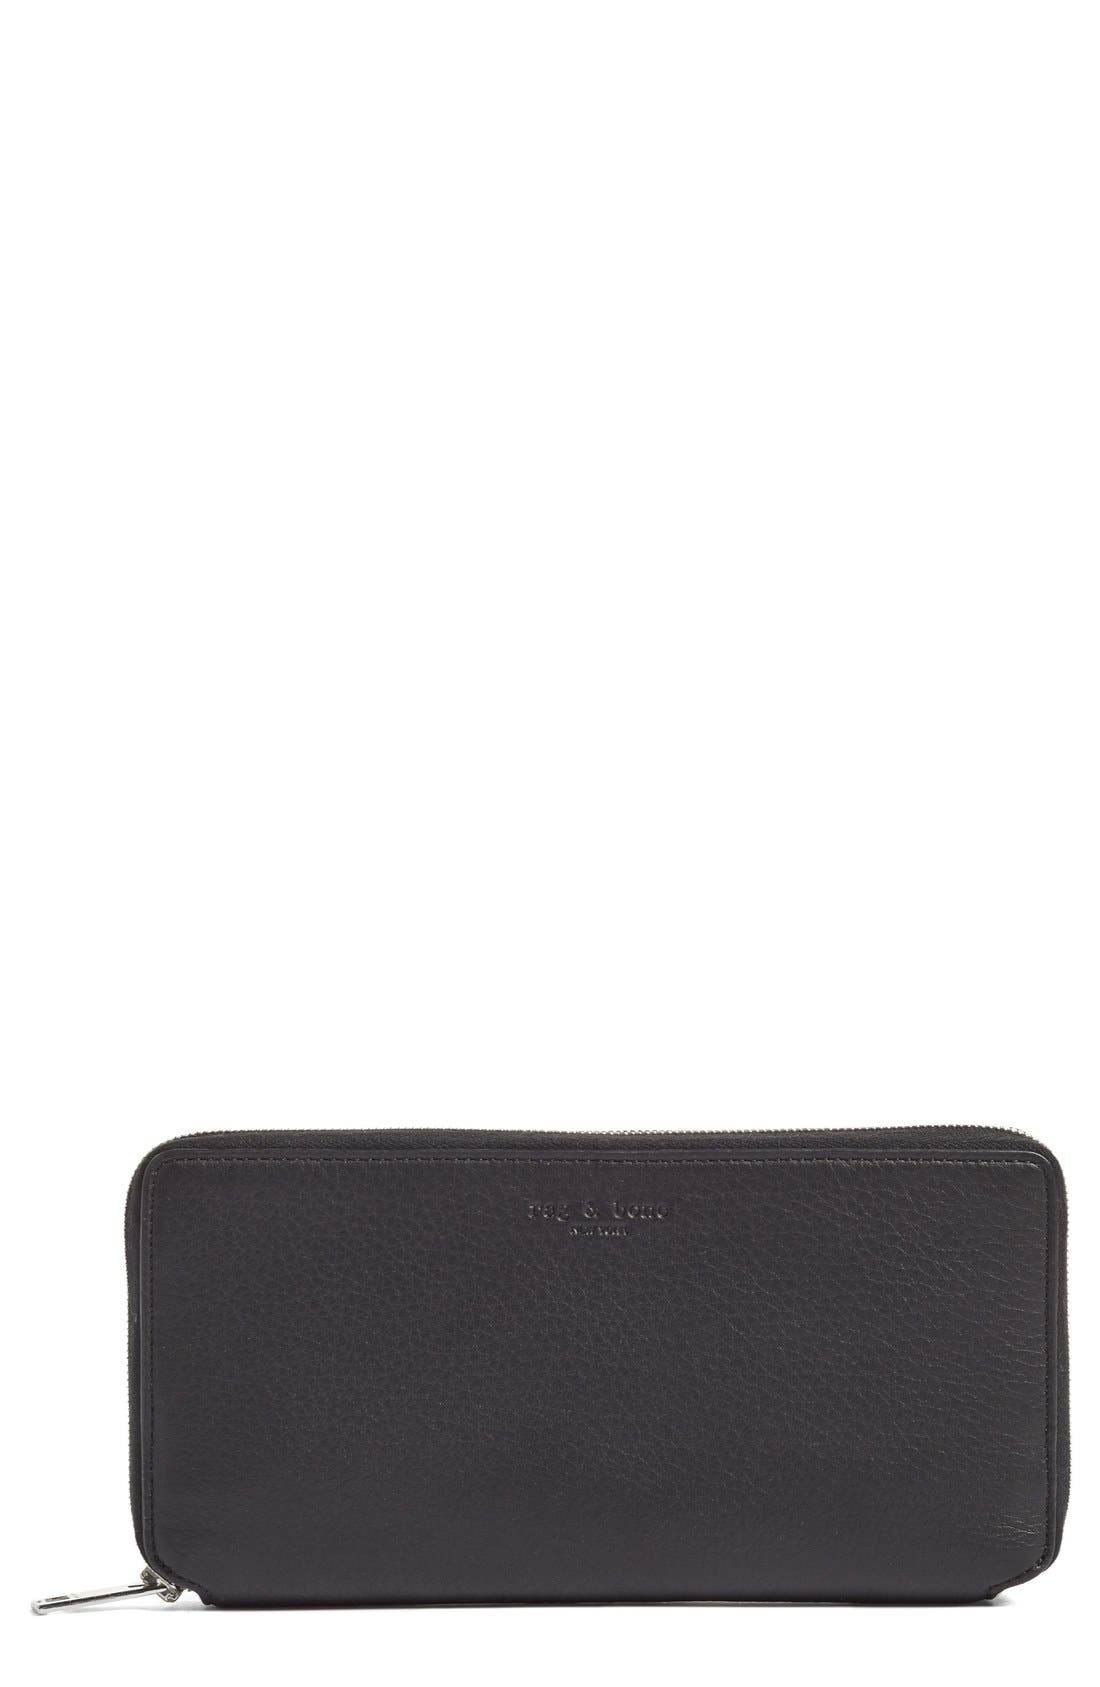 Leather Zip Around Wallet,                             Main thumbnail 1, color,                             001